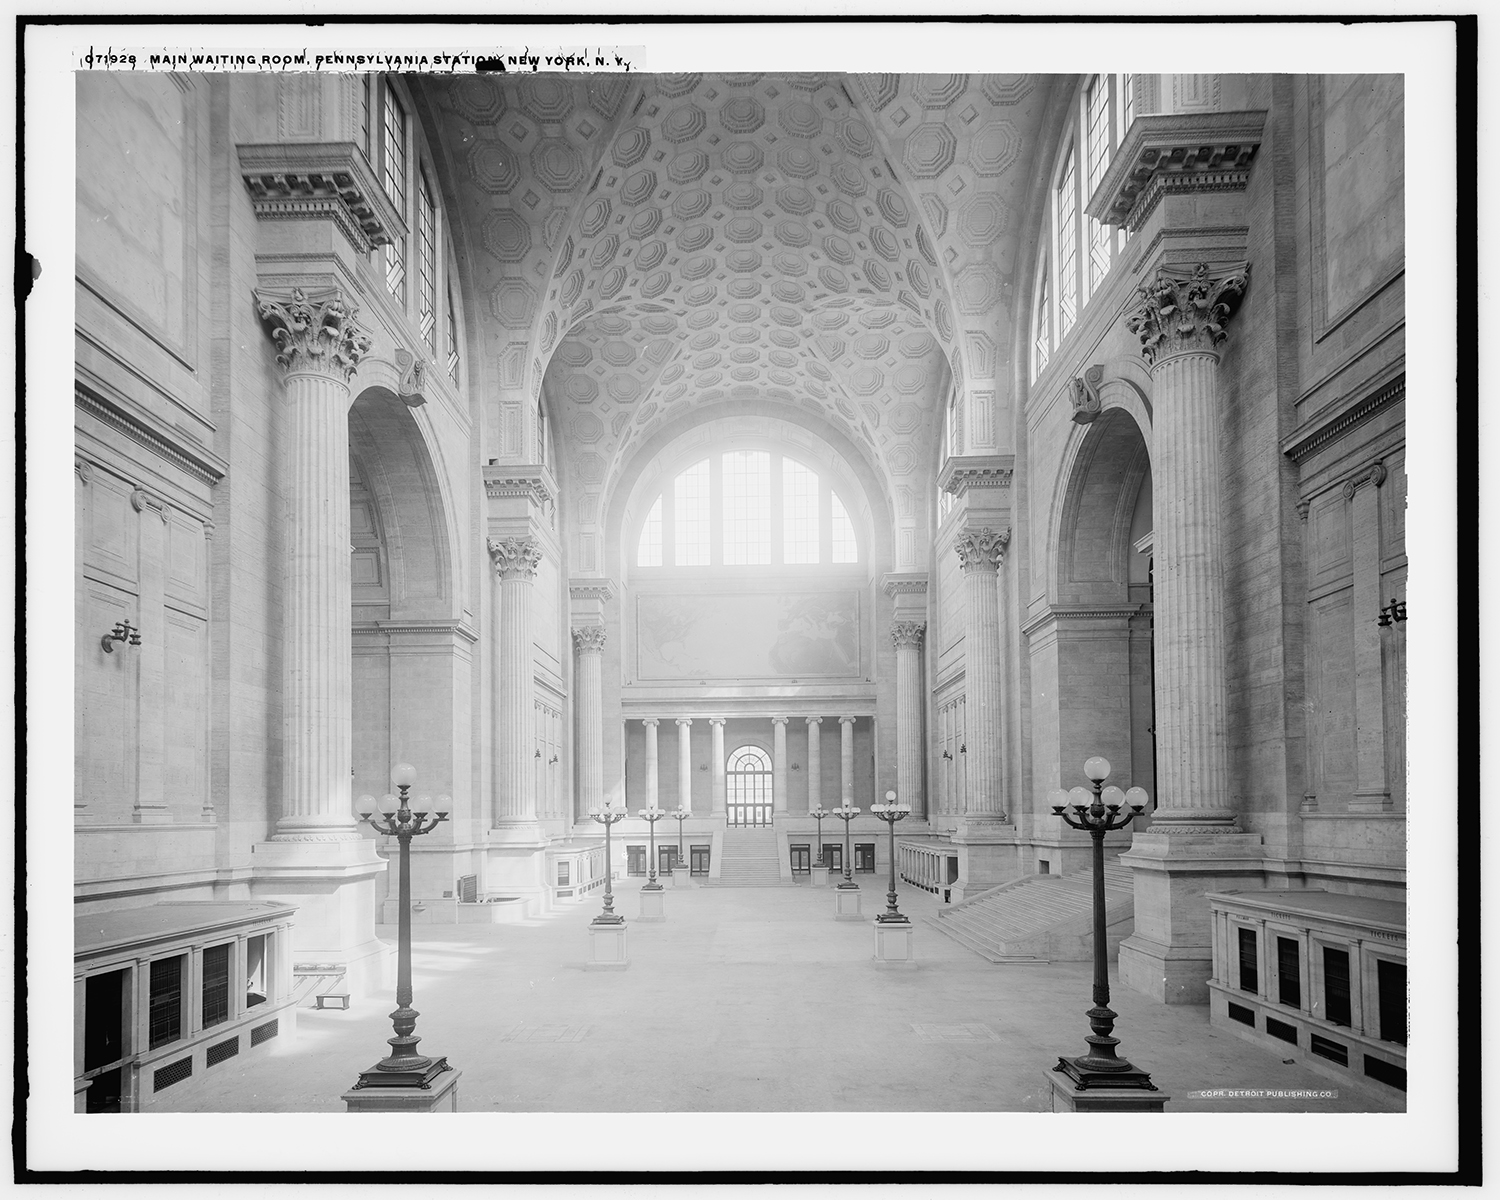 Main waiting room at Penn Station. Photo via Library of Congress.